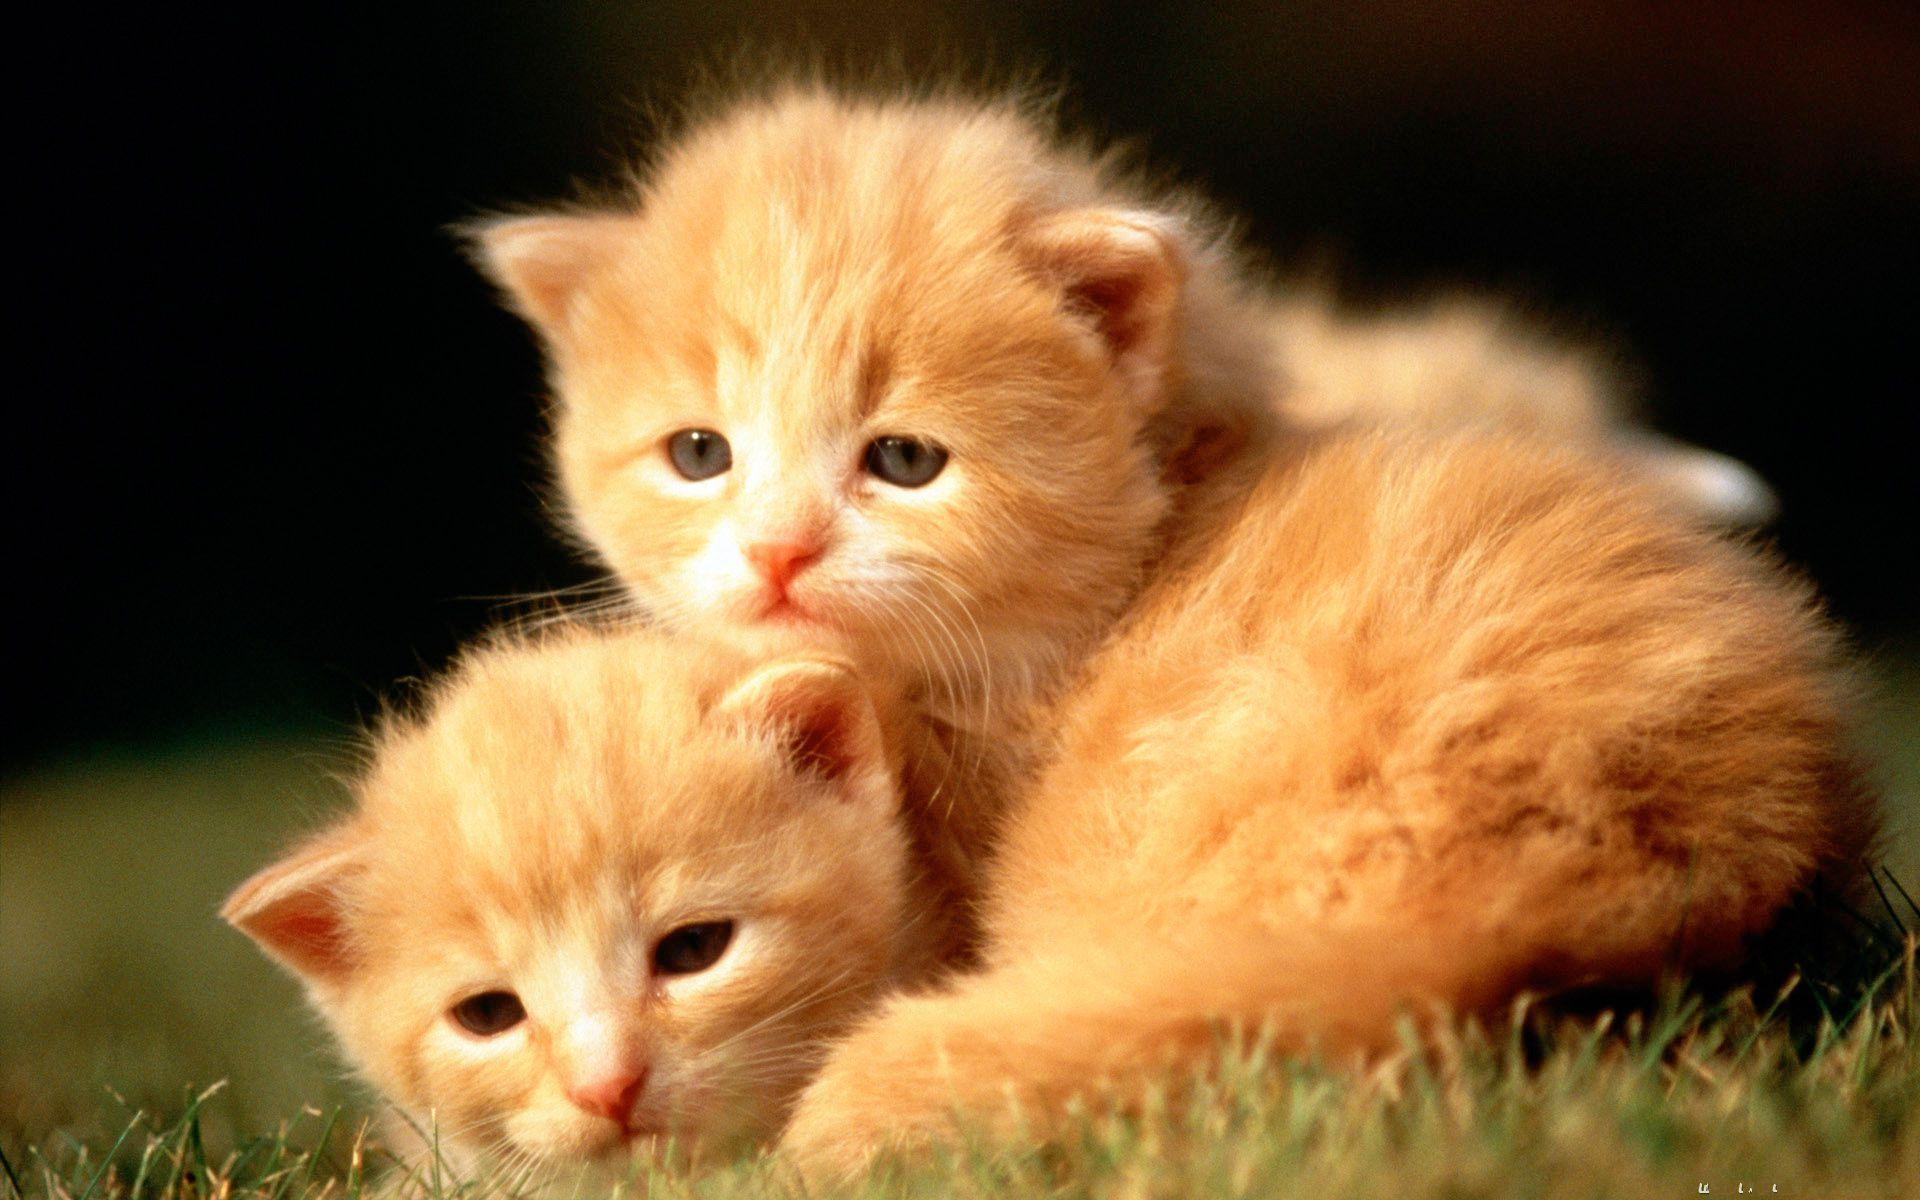 Pictures Of Cute Baby Animals Widescreen 2 HD Wallpapers